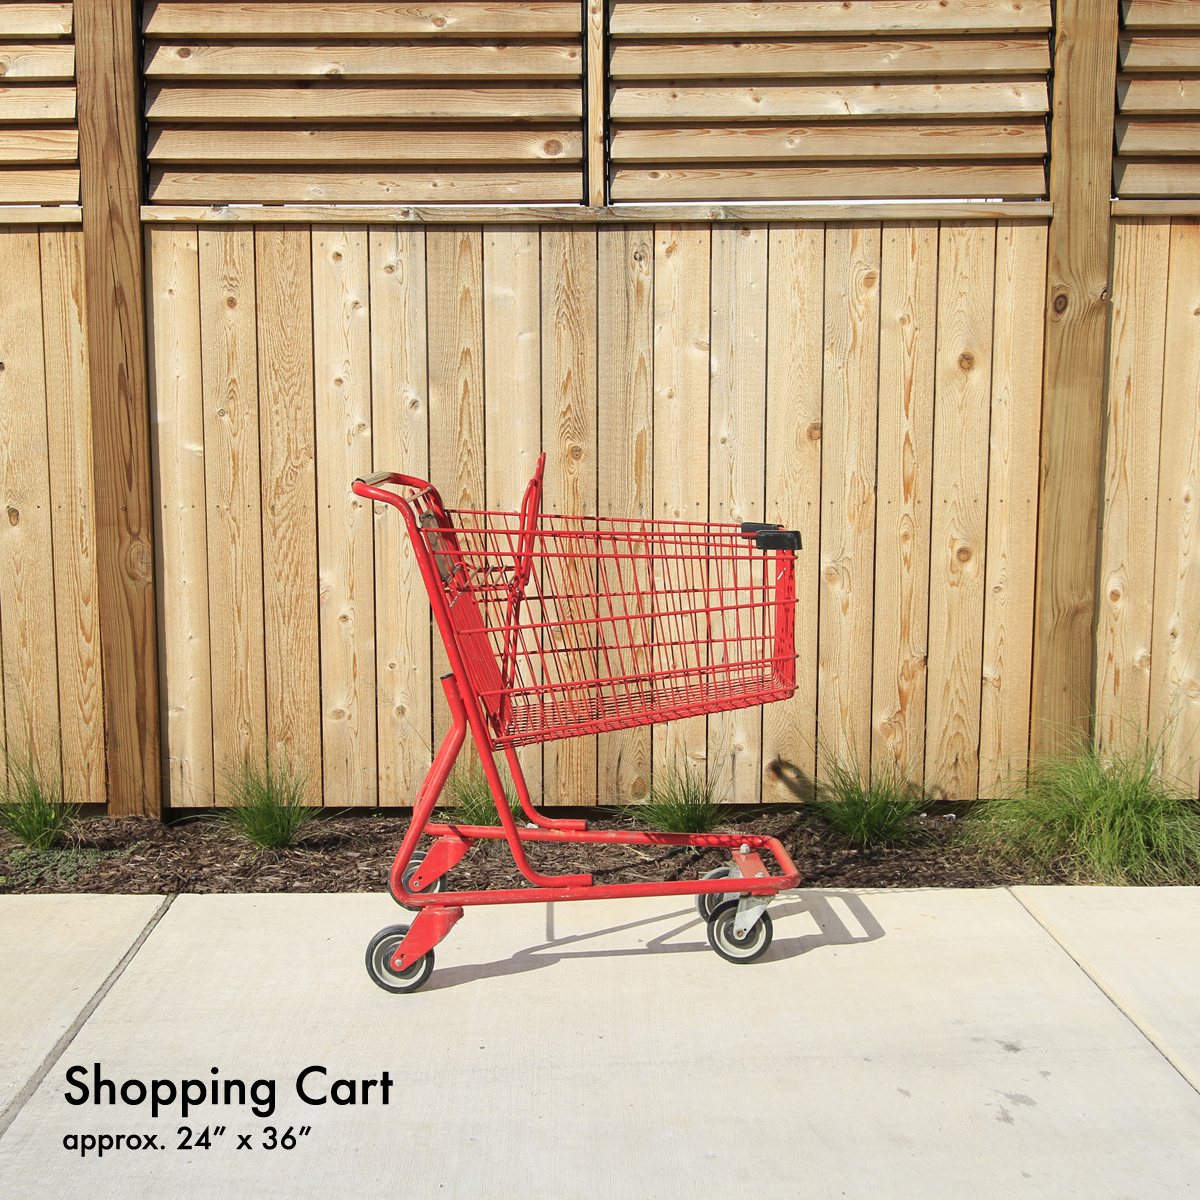 WH-shopping cart.jpg